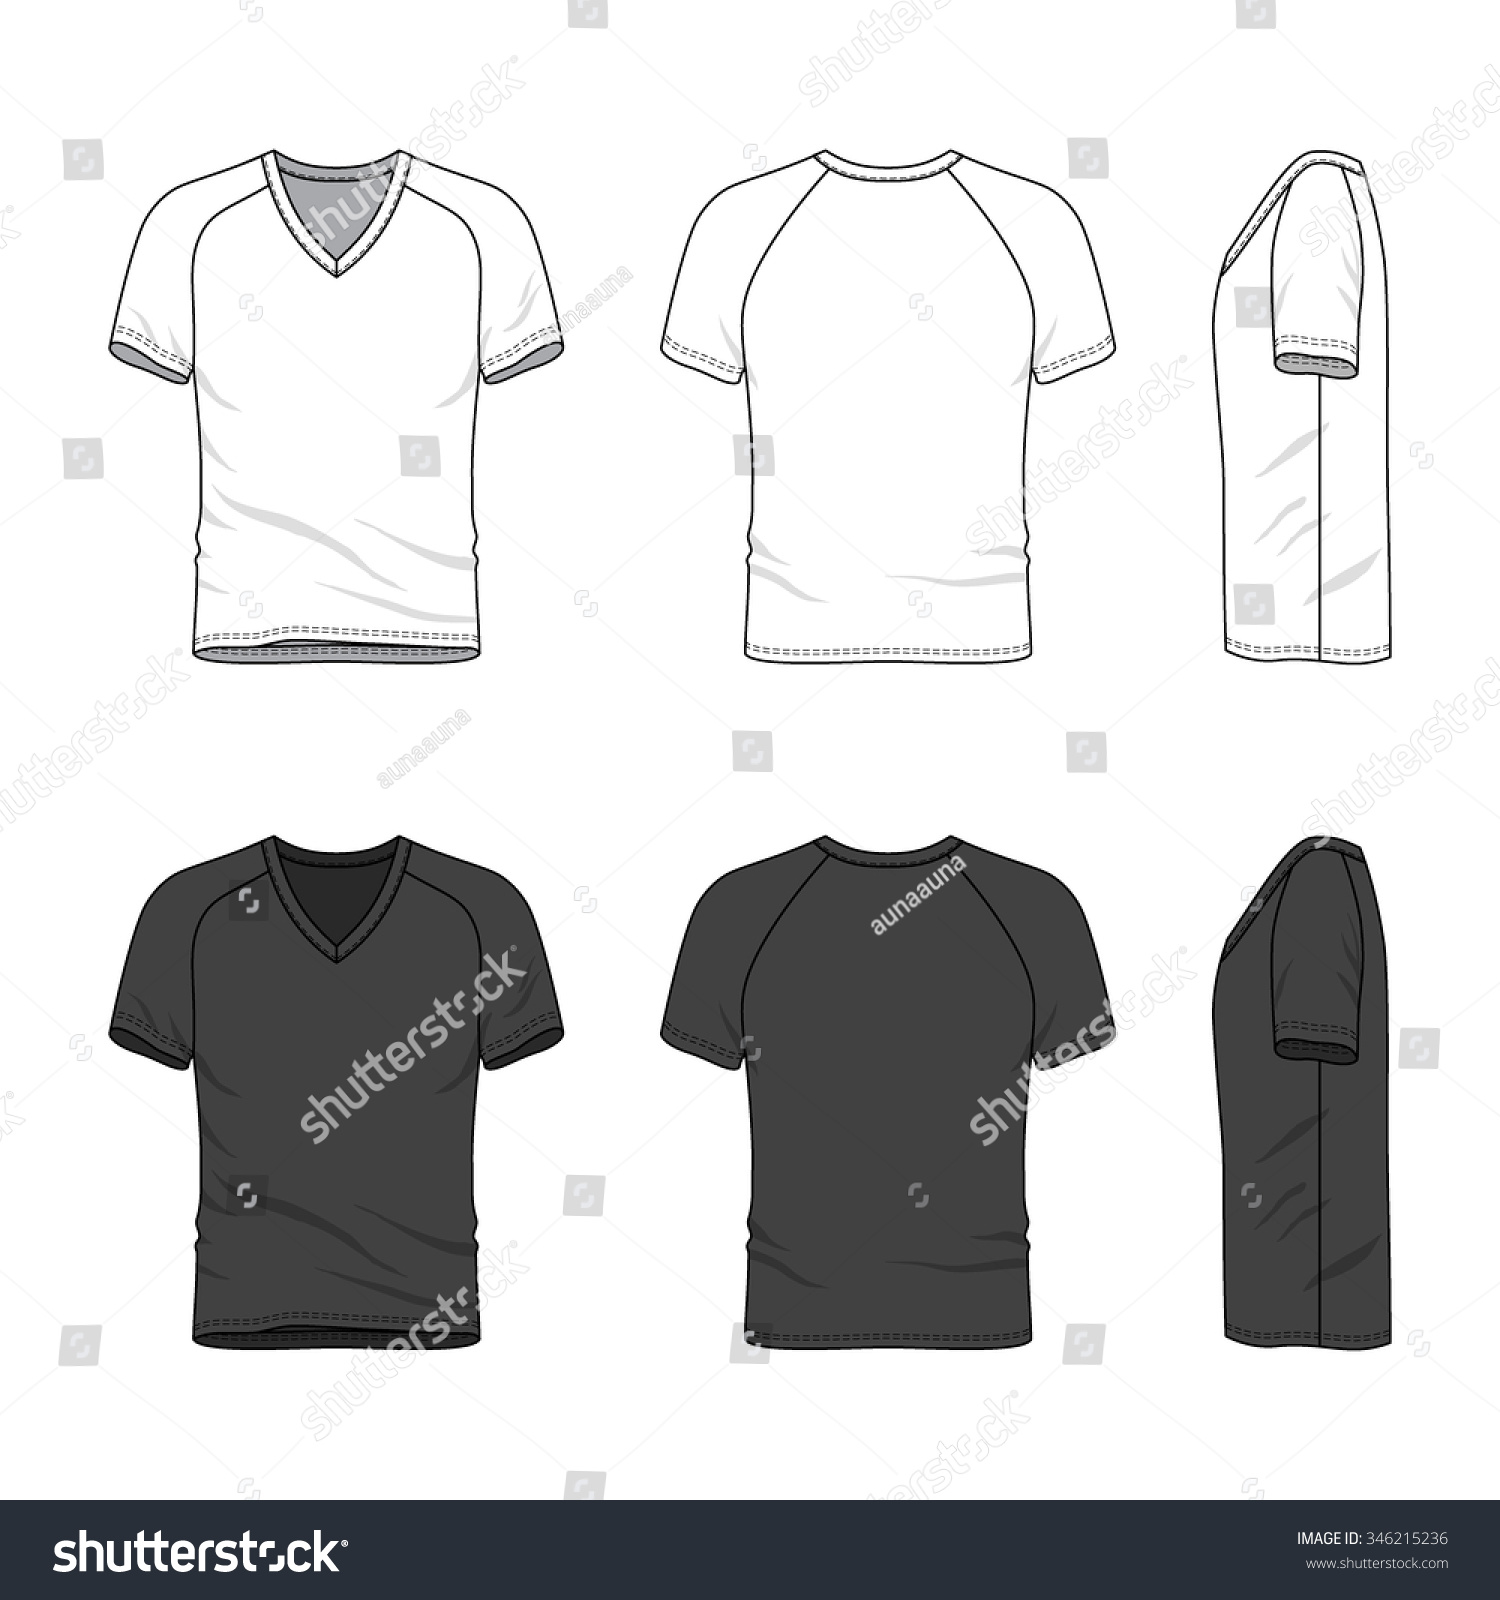 Black t shirt front and back plain - Men S Clothing Set In White And Black Colors Front Back And Side Views Of